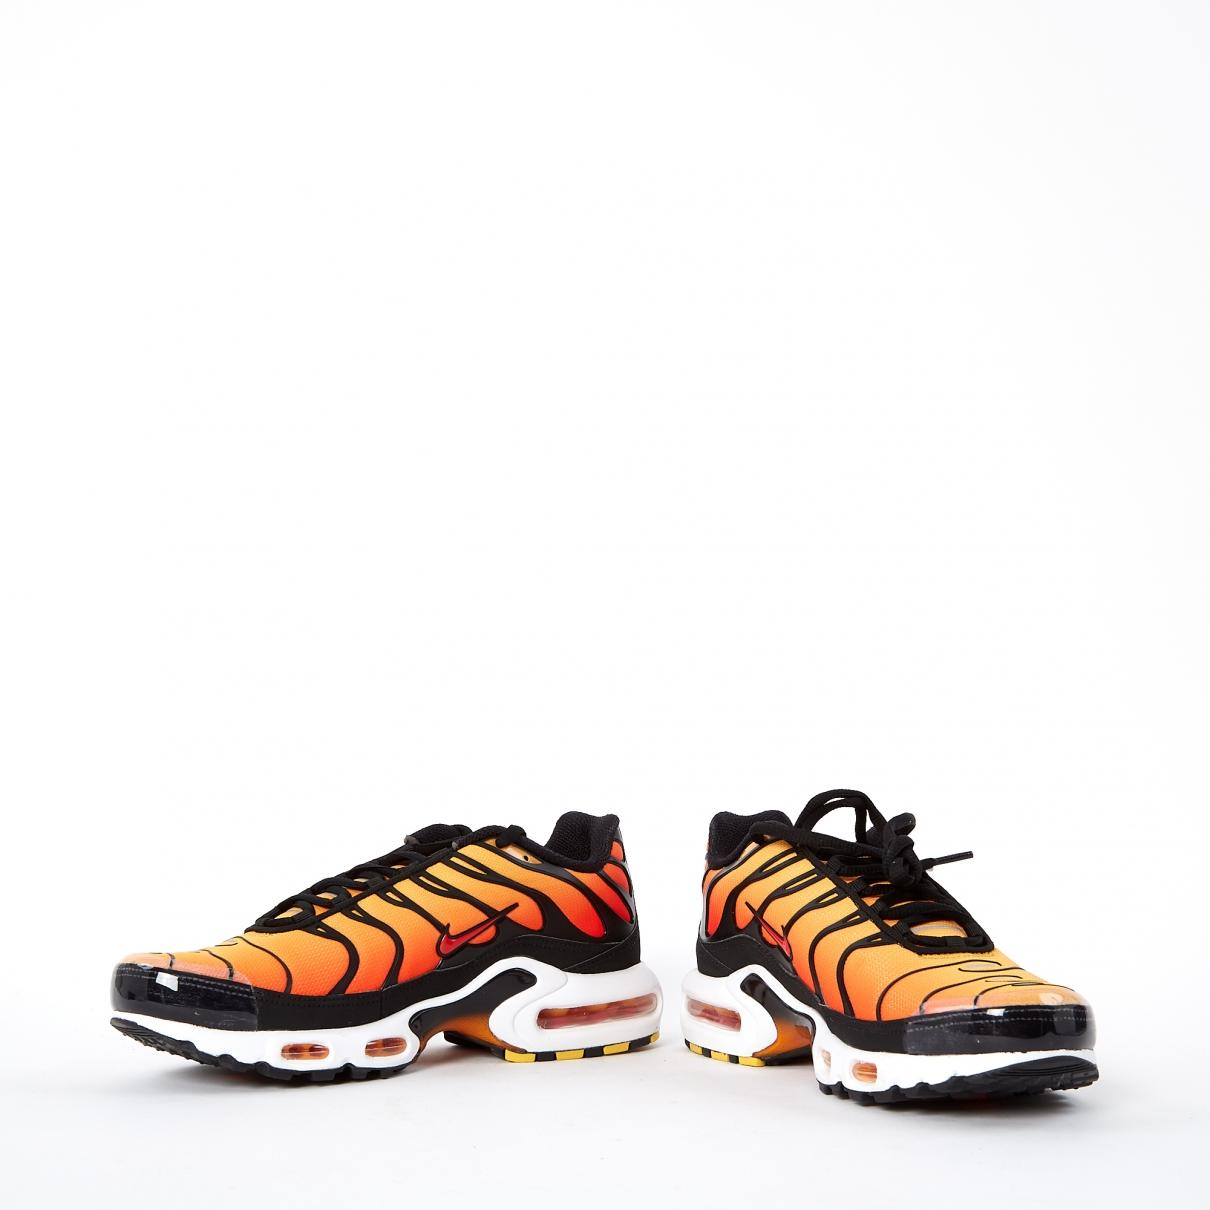 new arrival 51327 d7dfe Nike - Pre-owned Air Max Plus Orange Polyester Trainers for Men - Lyst.  View fullscreen